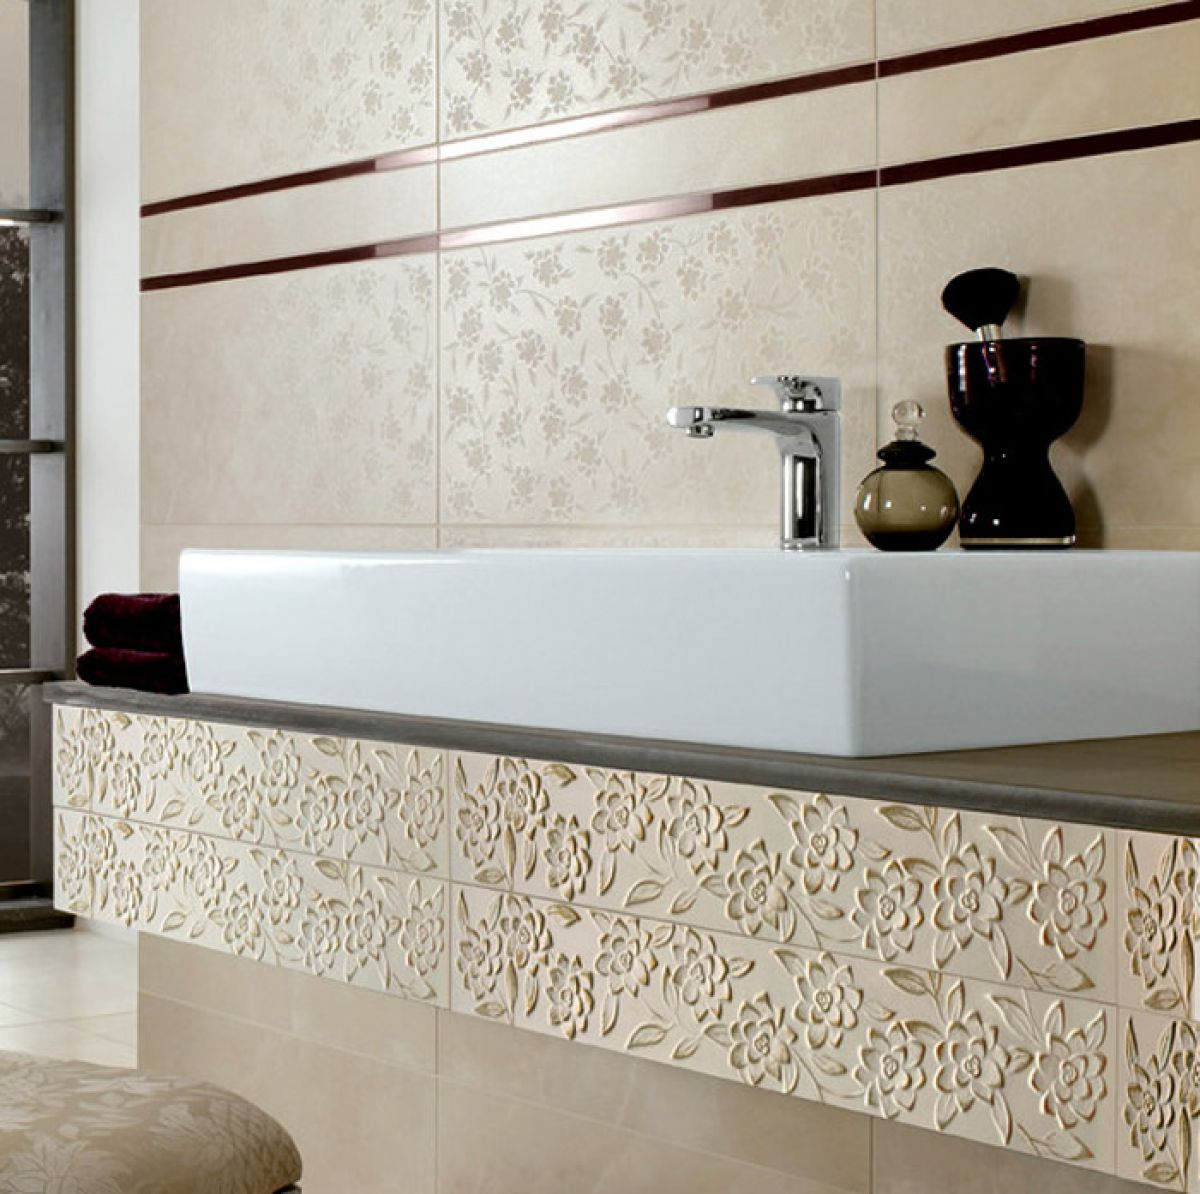 photos of bathroom tile designs v amp b ivoire border tile 1503 10 x 60cm uk bathrooms 23977